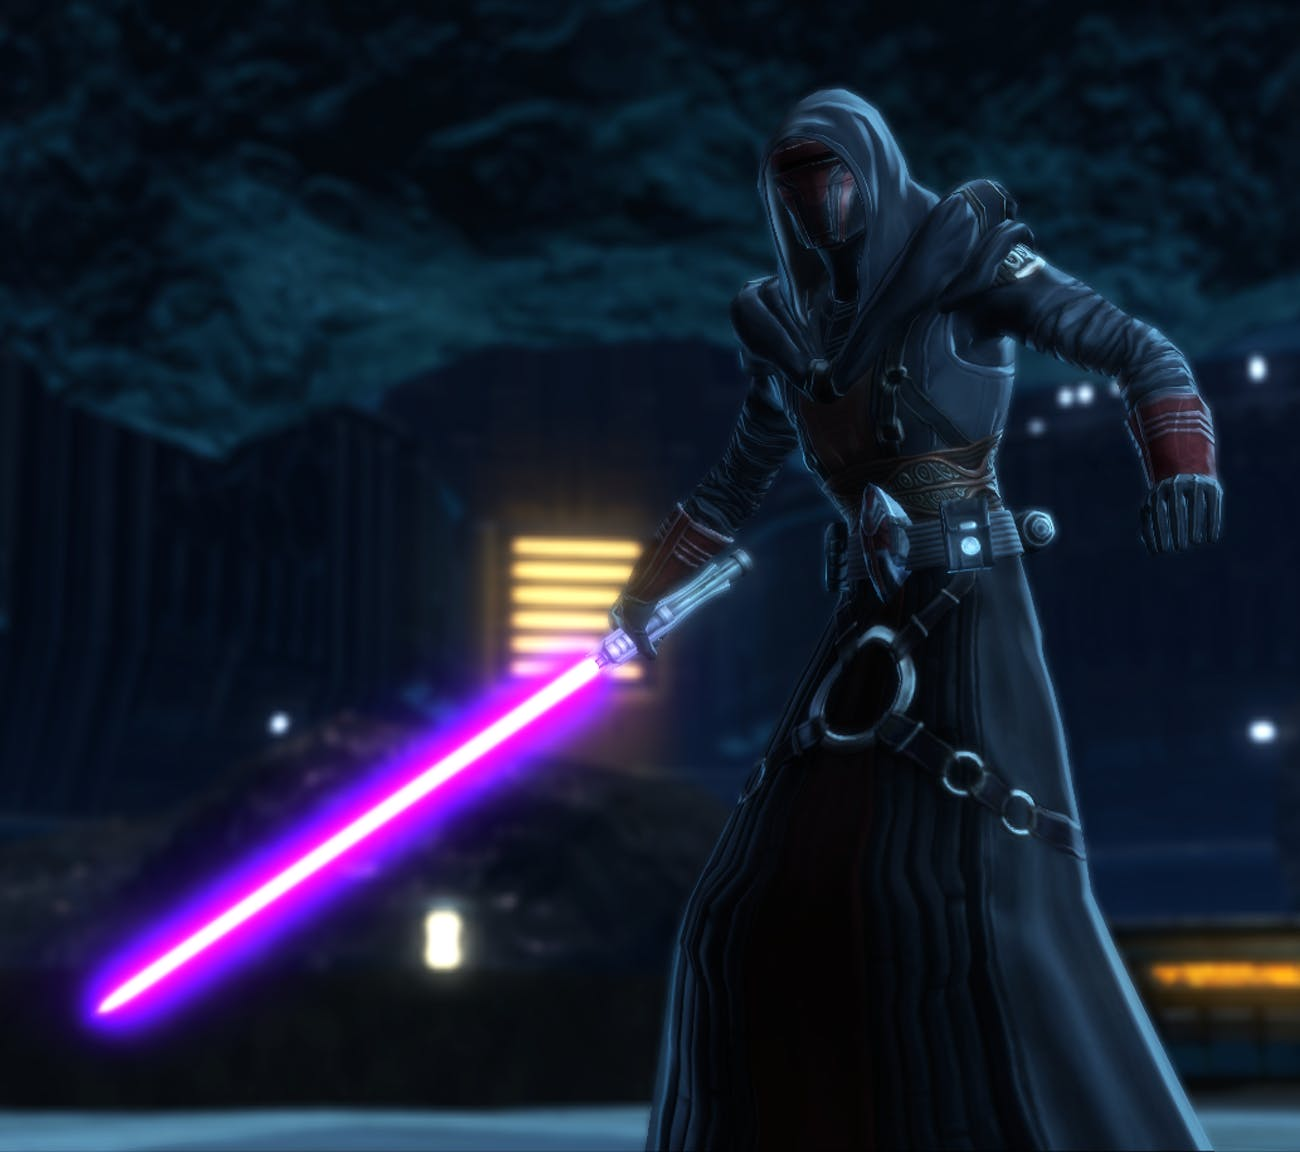 Revan as he appears in 'Star Wars: The Old Republic'.